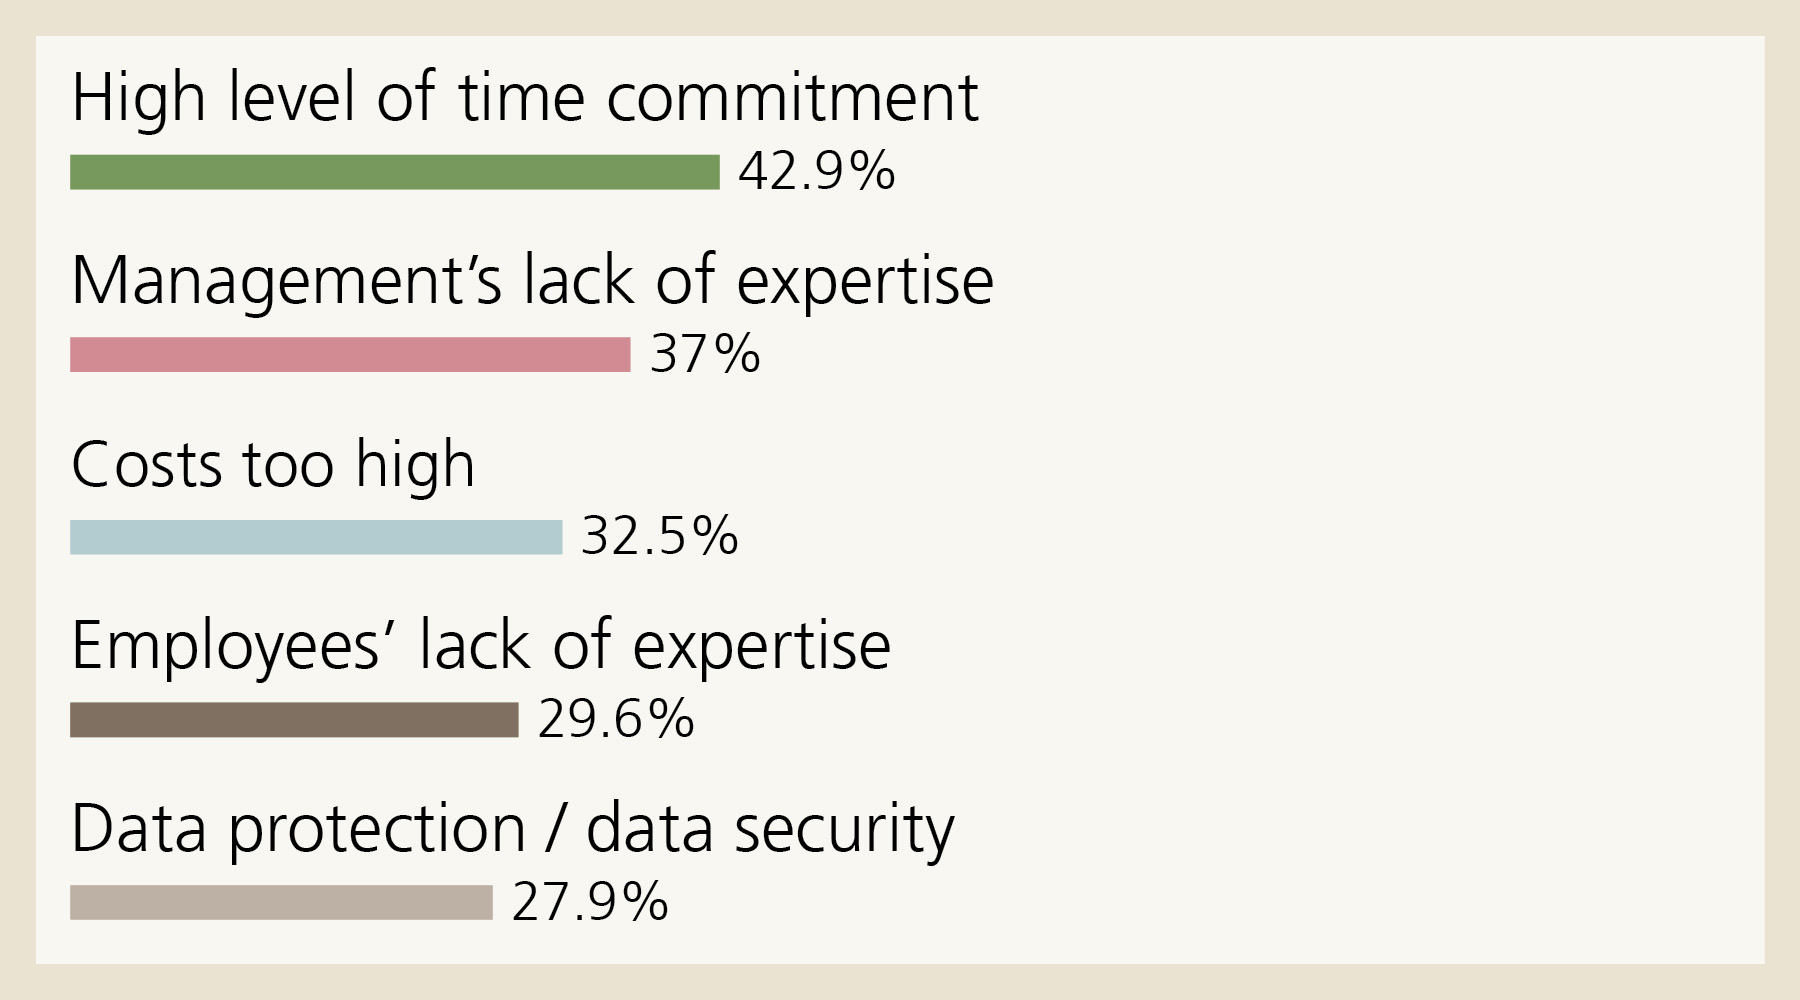 Barriers: These five barriers hinder small companies the most in relation to their digital transformation: High level of time commitment 42.9%, Management's lack of expertise 37%, Costs too high 32.5%, Employees' lack of expertise 29.6%, Data protection / data security 27.9%.